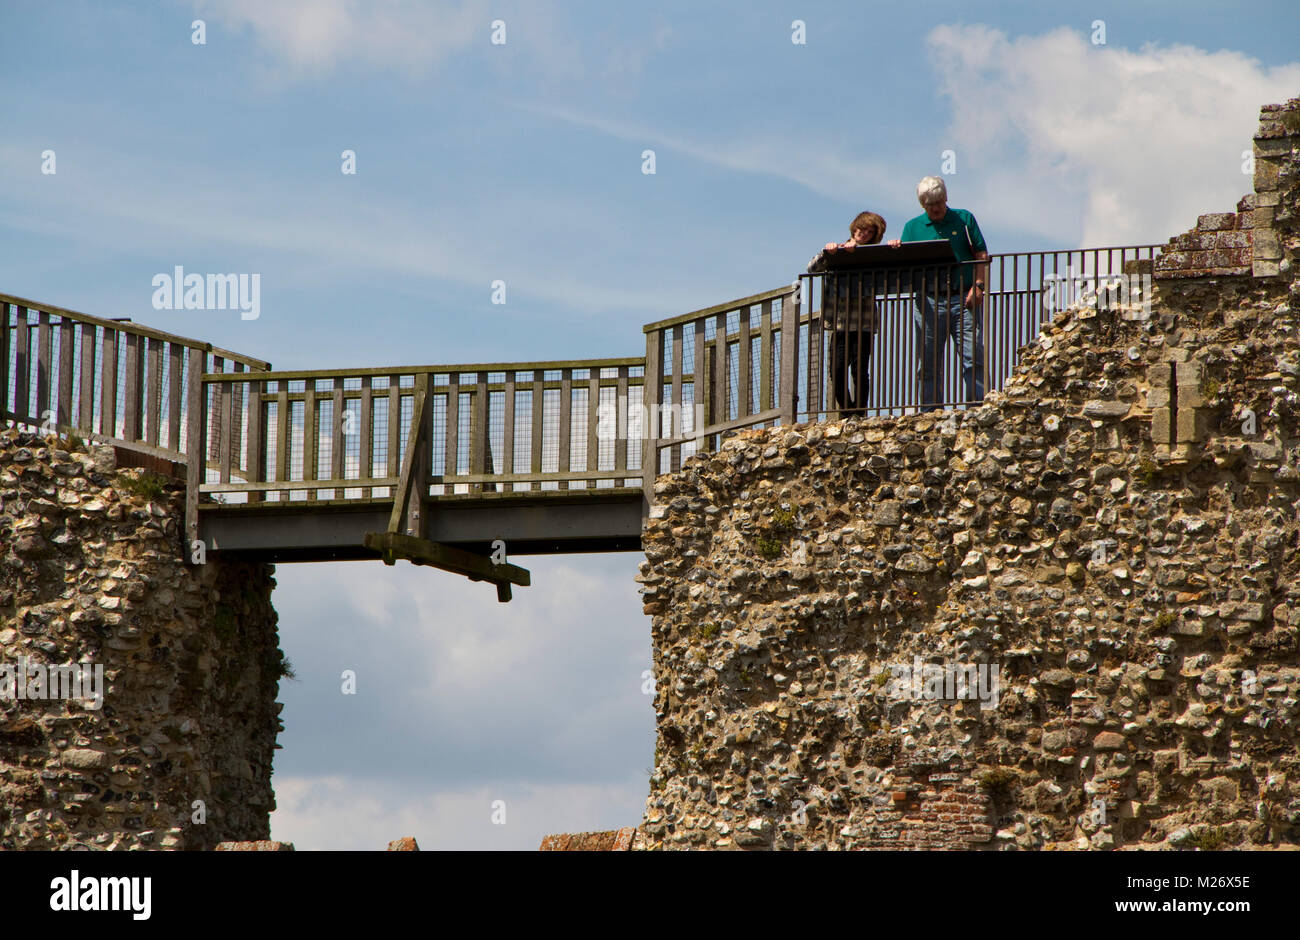 A couple look at an information board on the walls of Framlingham castle - Stock Image